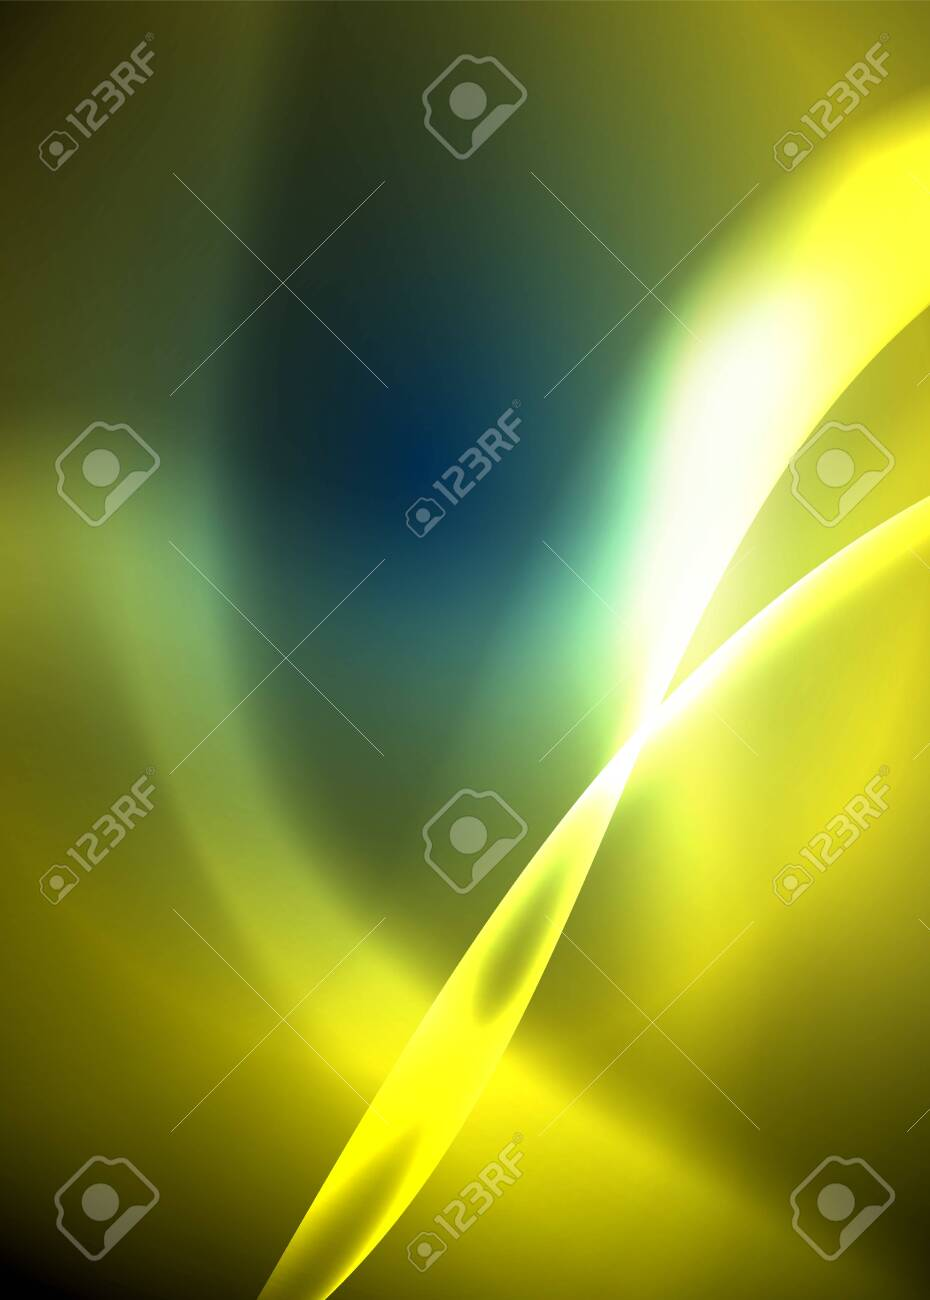 Shiny color bright neon abstract wave template. Abstract bright light. Neon light glowing effect. Space background. Abstract shape. Shining space. - 135258227